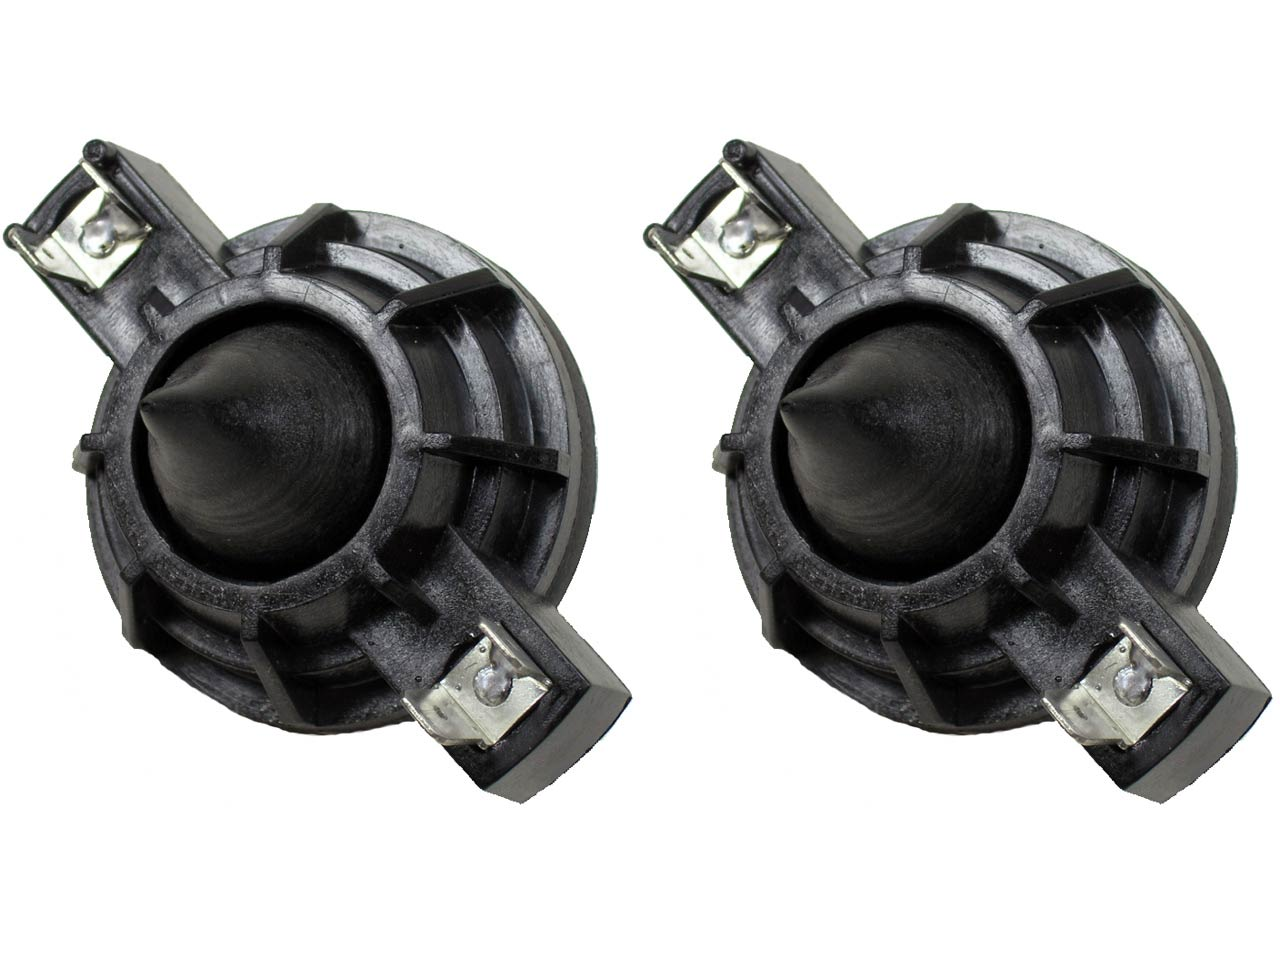 SS Audio Diaphragm for EV, Eliminator, DH3, DH2010, 8 Ohm, D-DH3 (2 PACK)